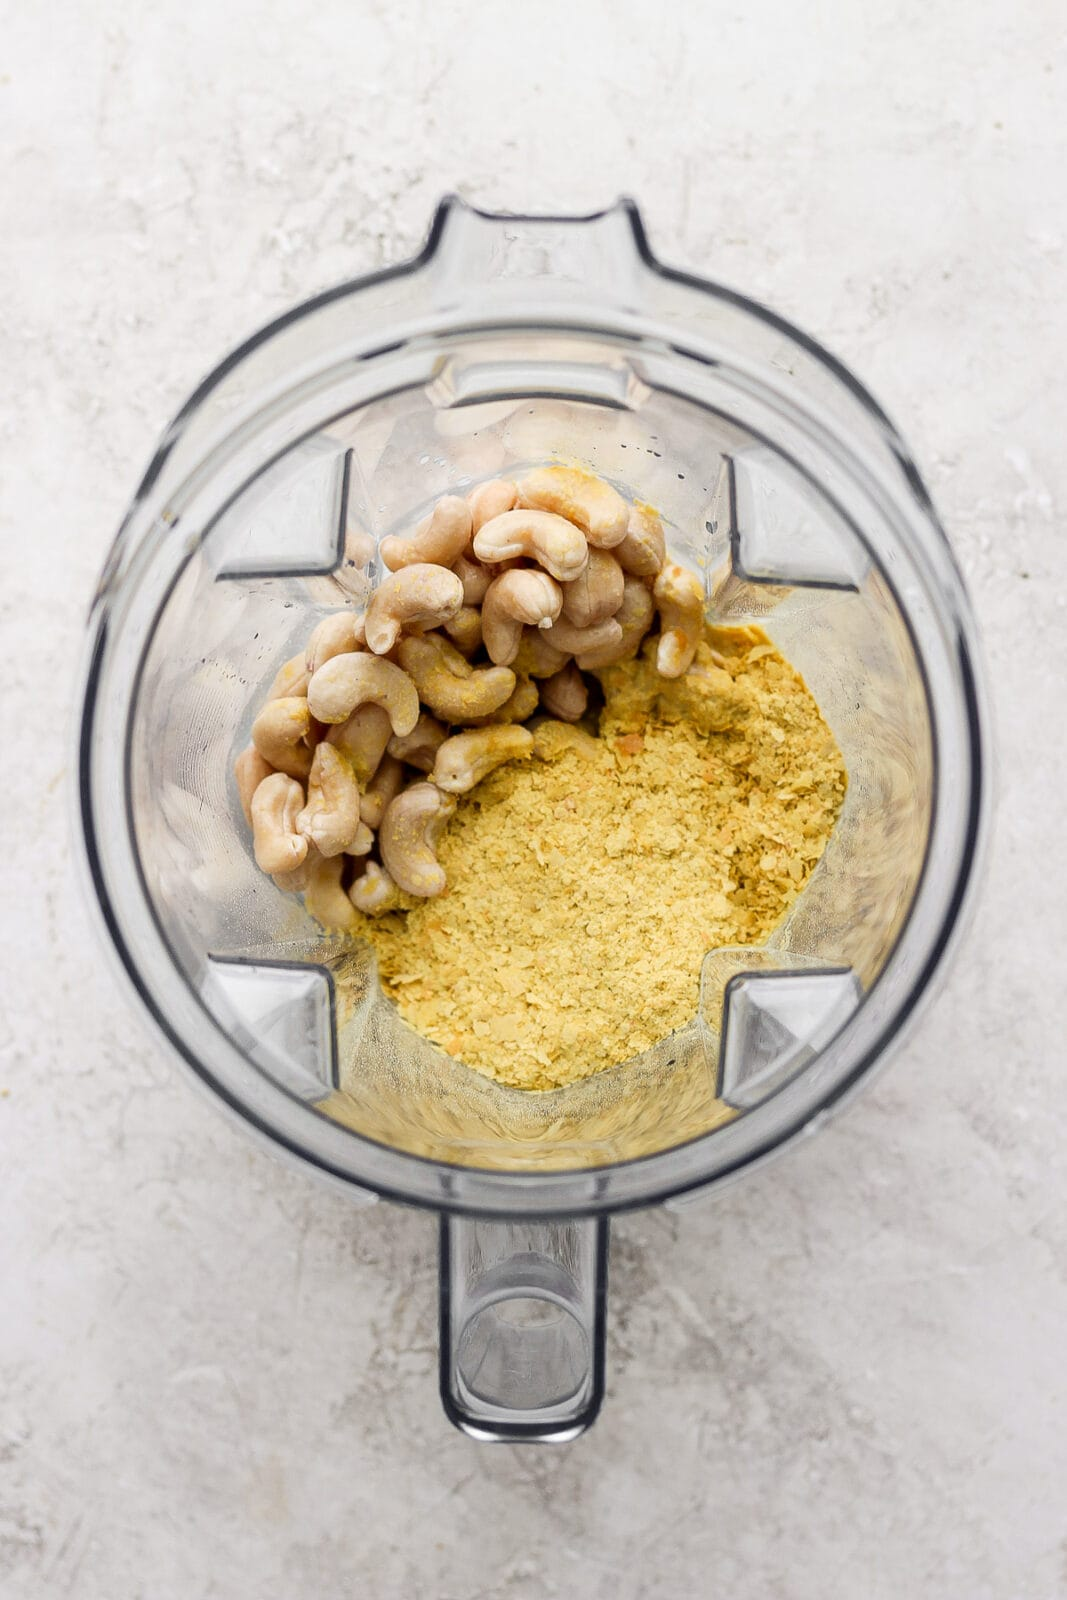 Top shot of blender filled with drained cashews and nutritional yeast.